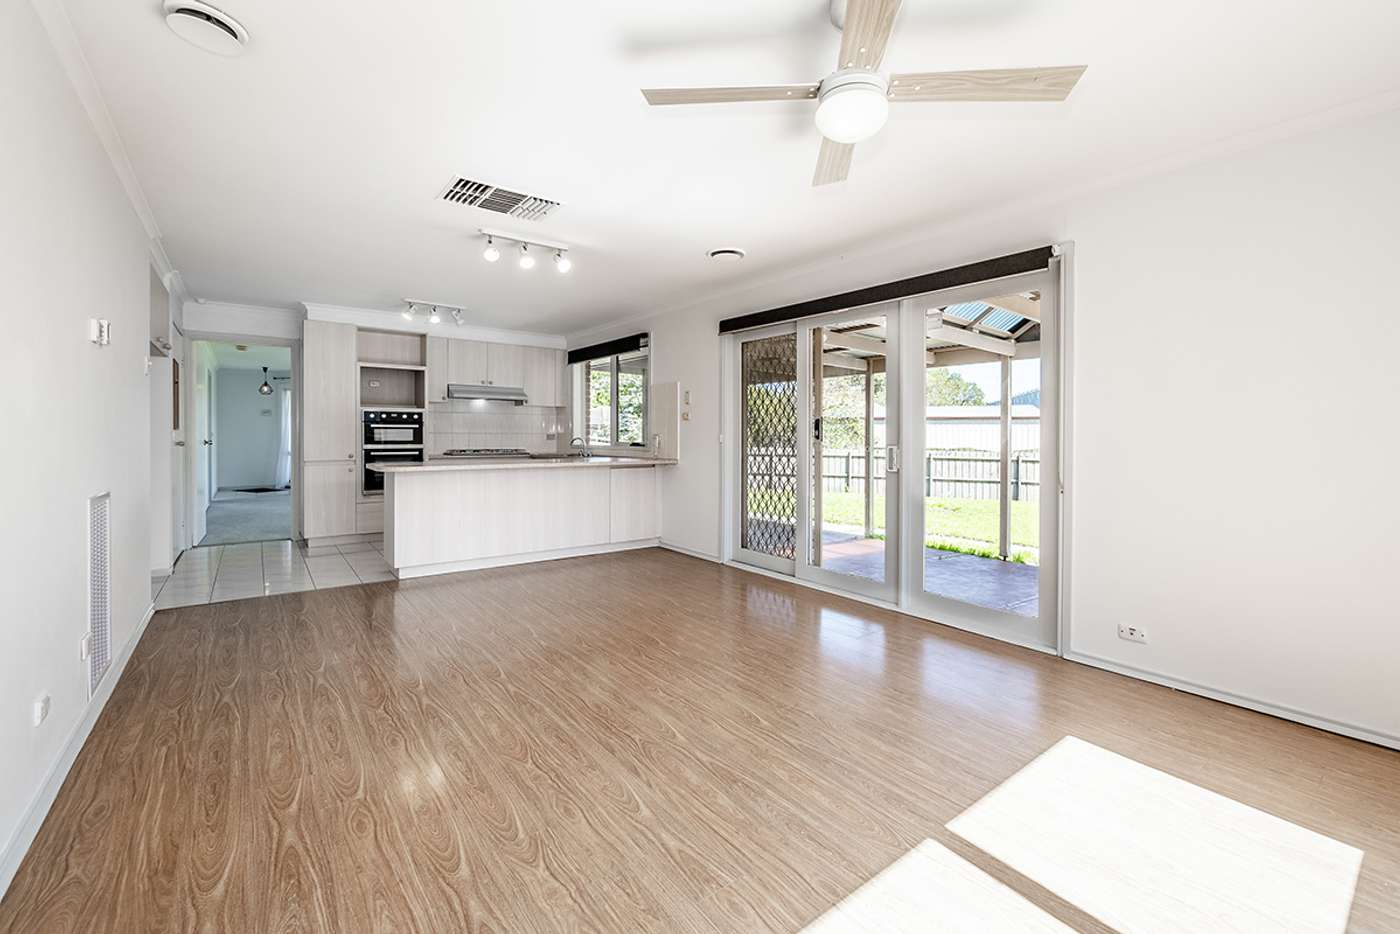 Sixth view of Homely house listing, 16 Tamworth Court, Cranbourne VIC 3977